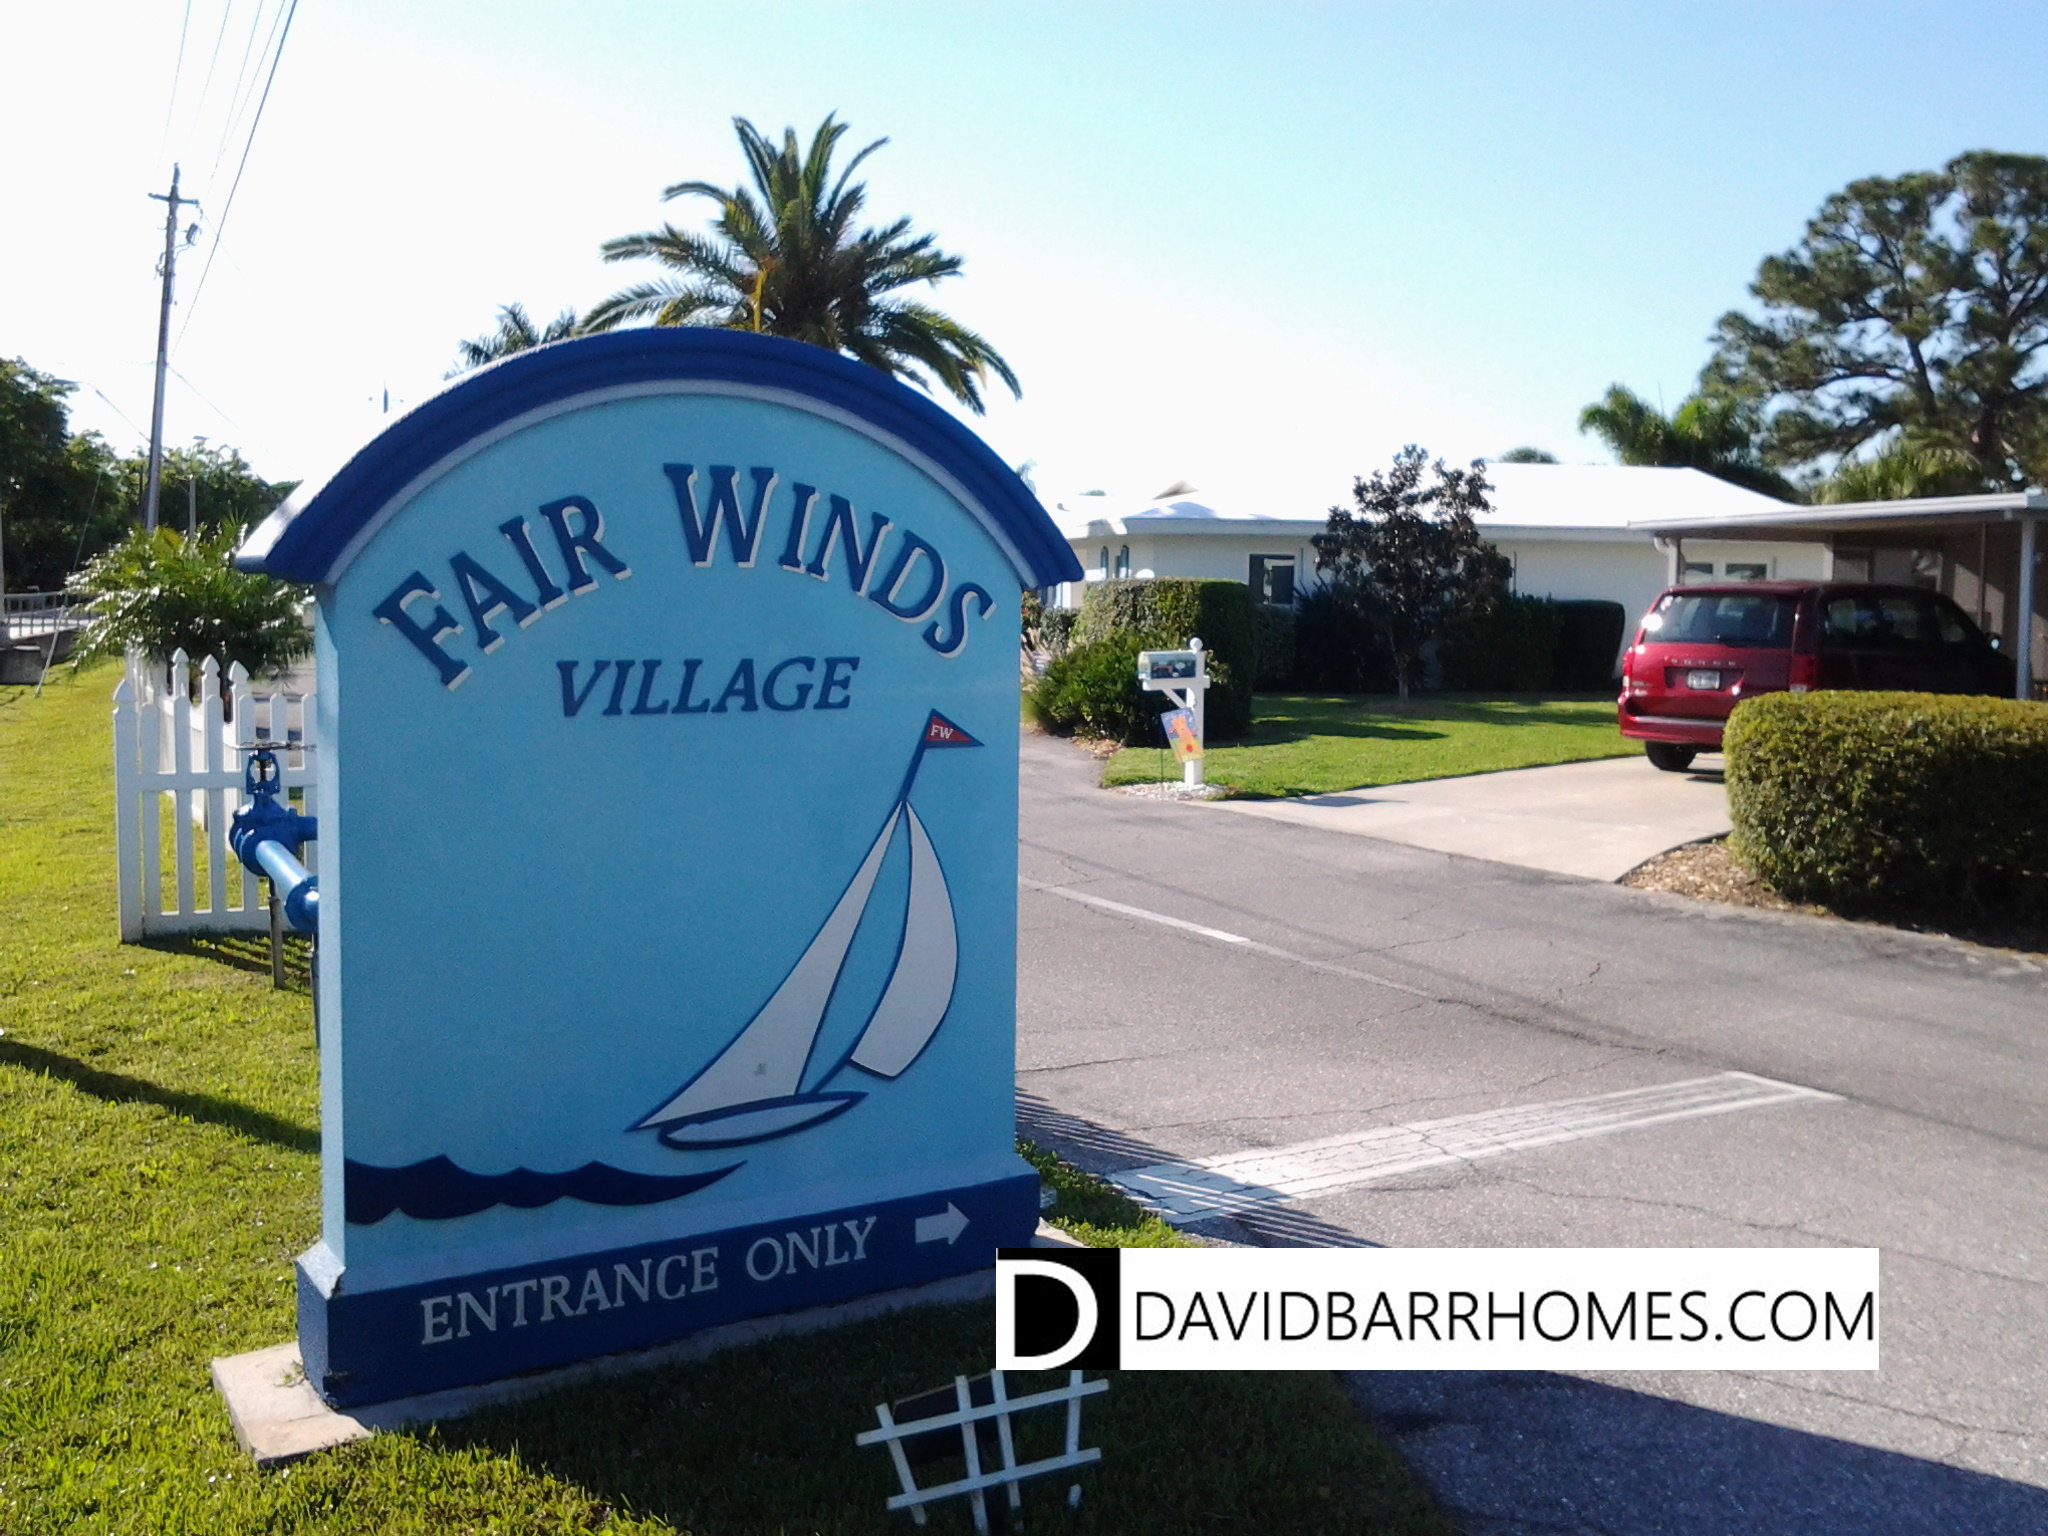 Fairwinds Village entrance